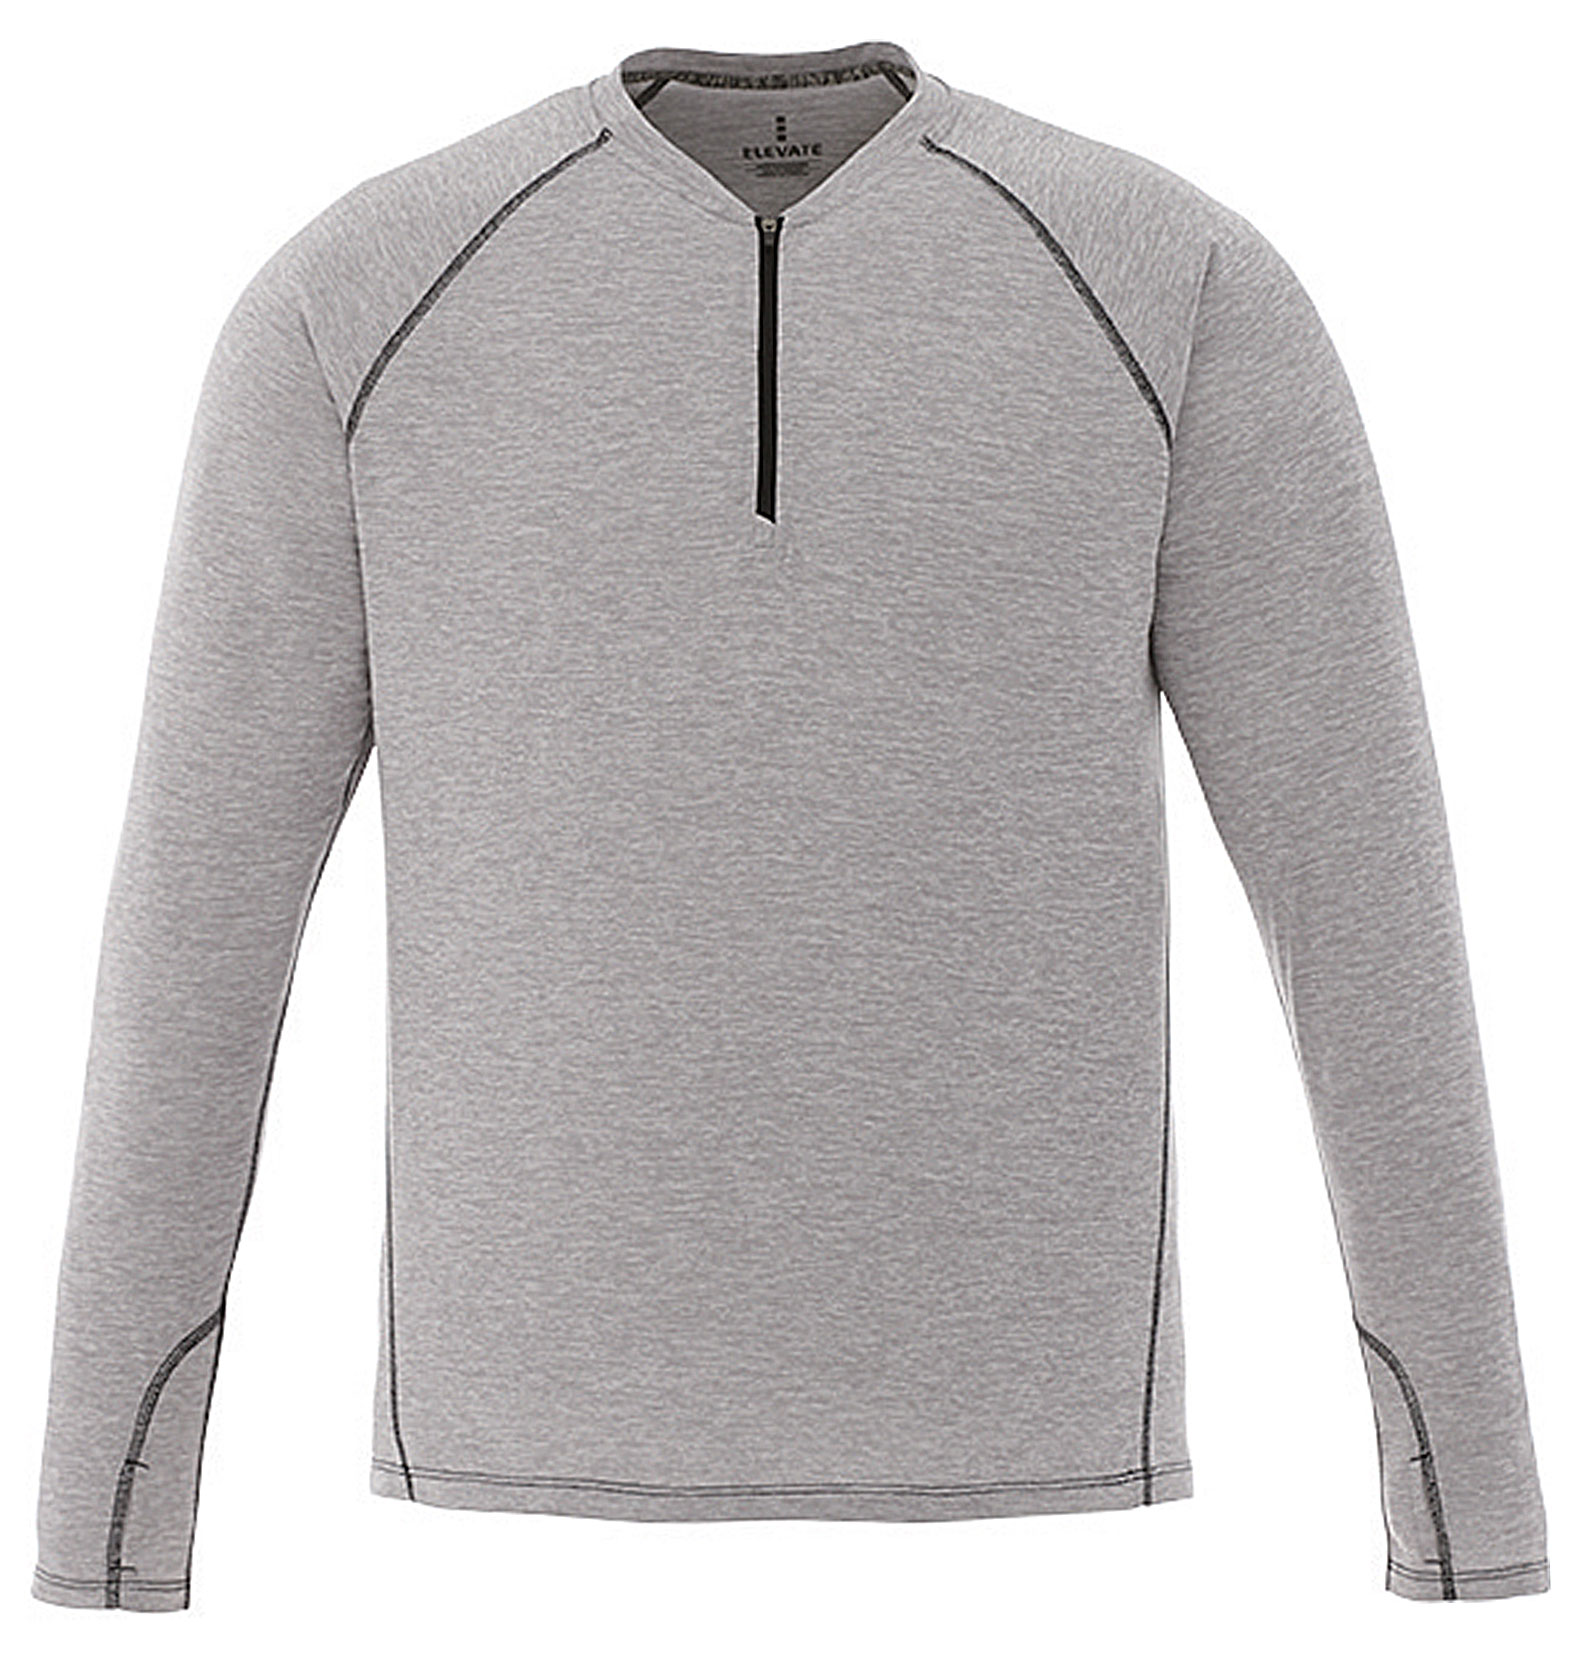 Trimark Mens Quadra Long Sleeve Top